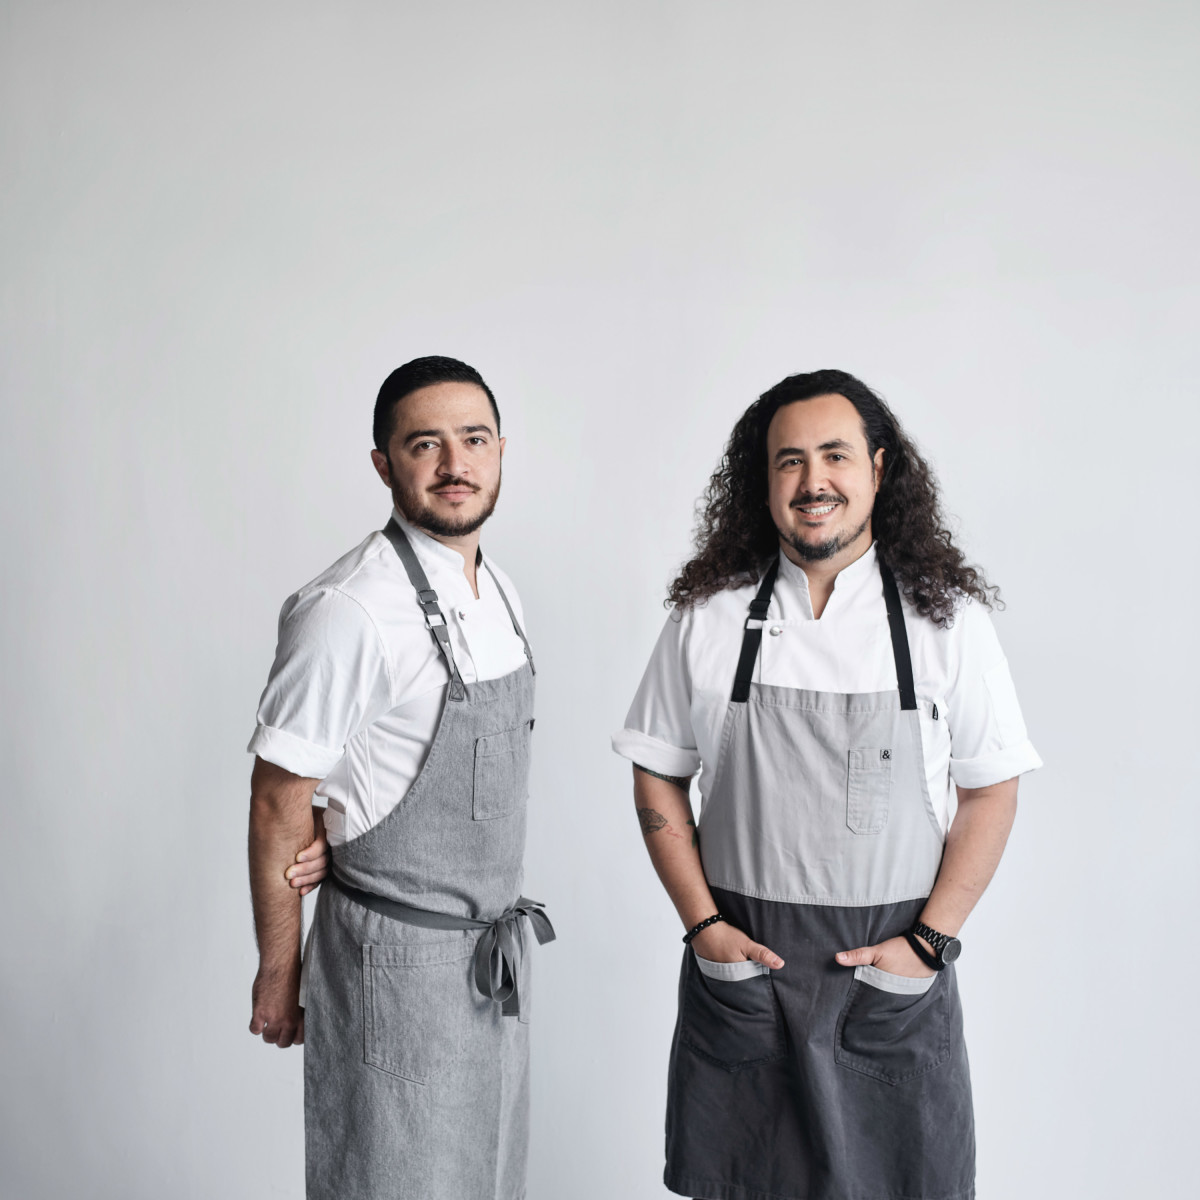 Diego and Rico Mixtli